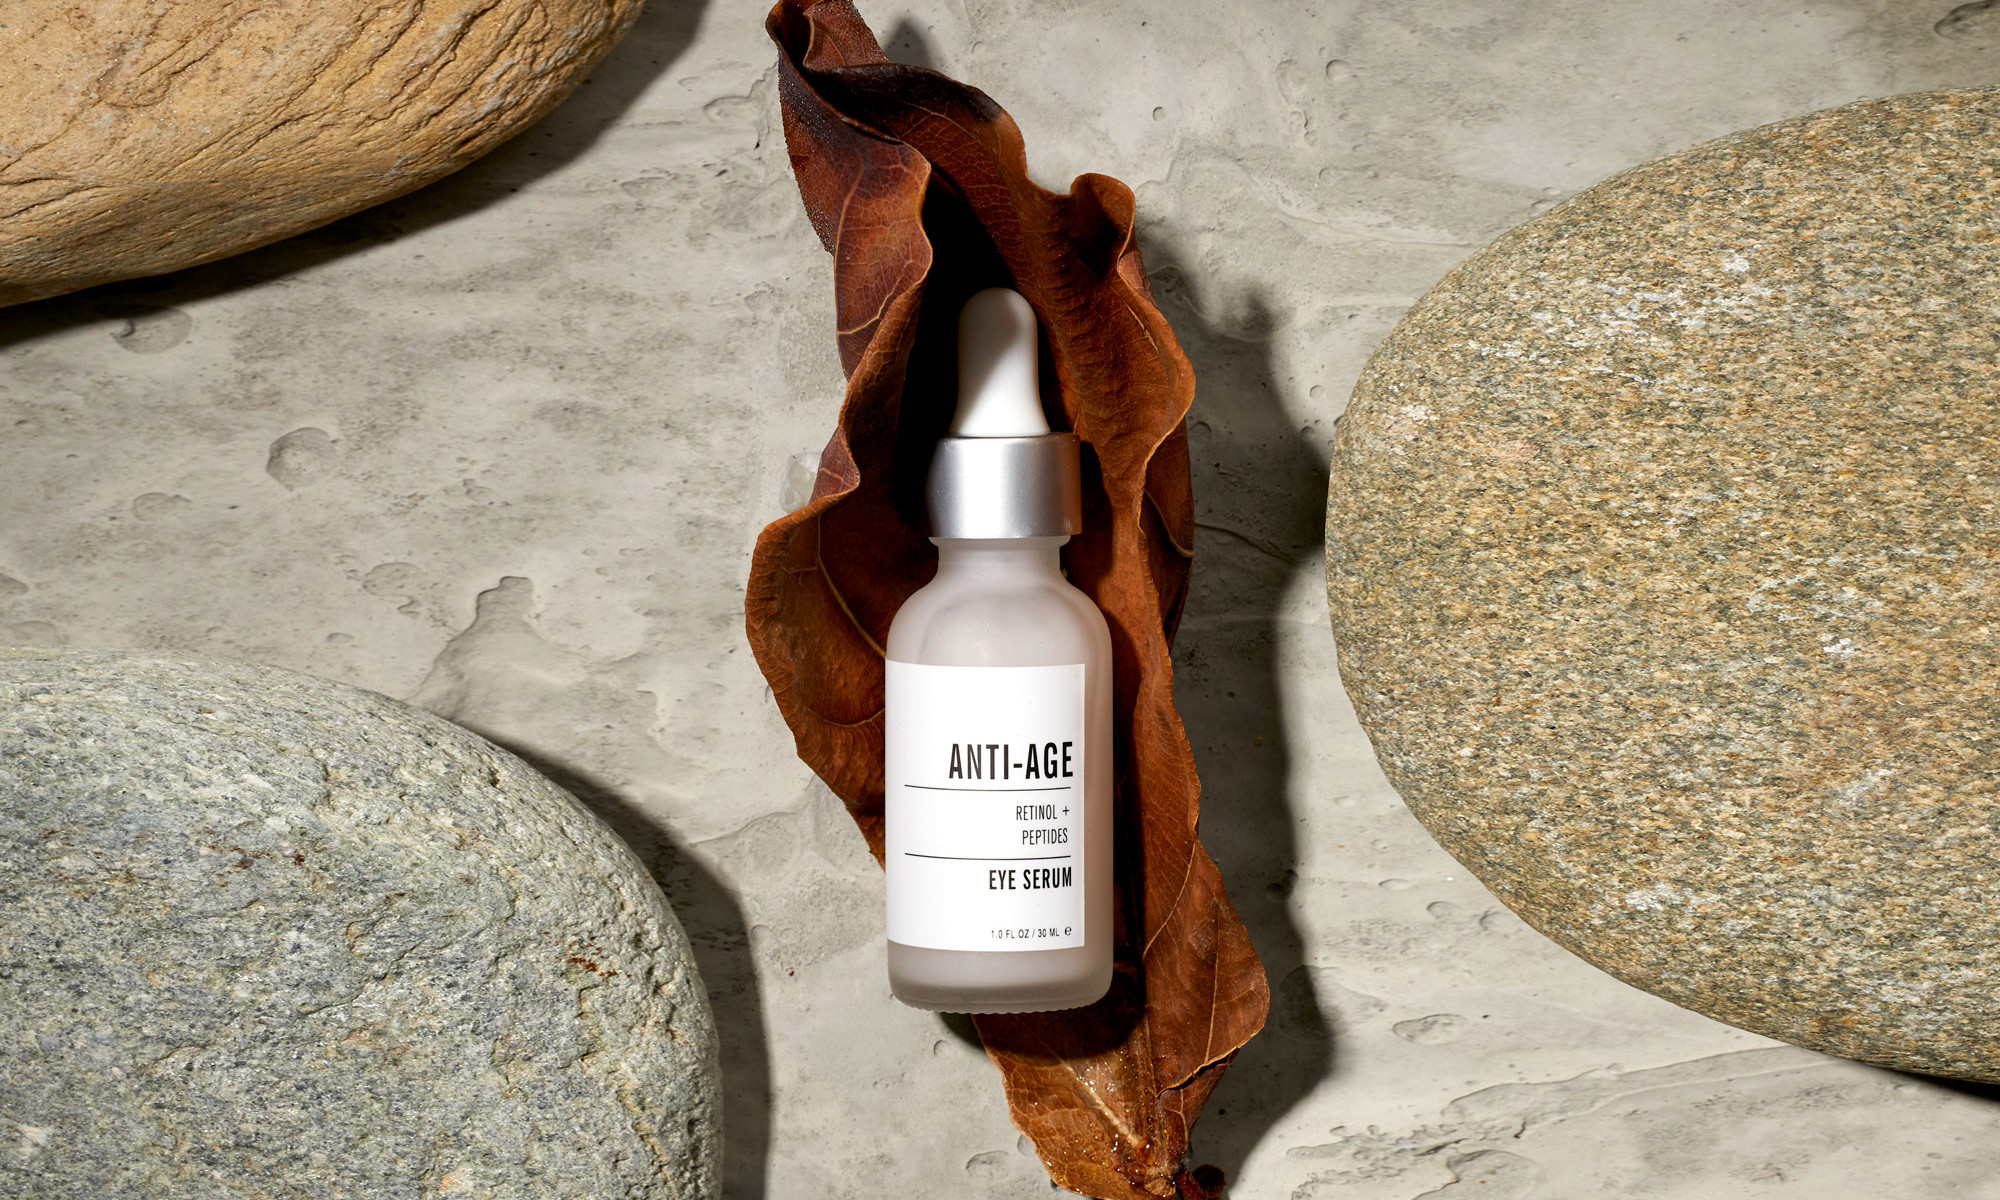 Beautiful commercial product photography of anti-aging face serum surrounded by stones, leaves and other natural elements